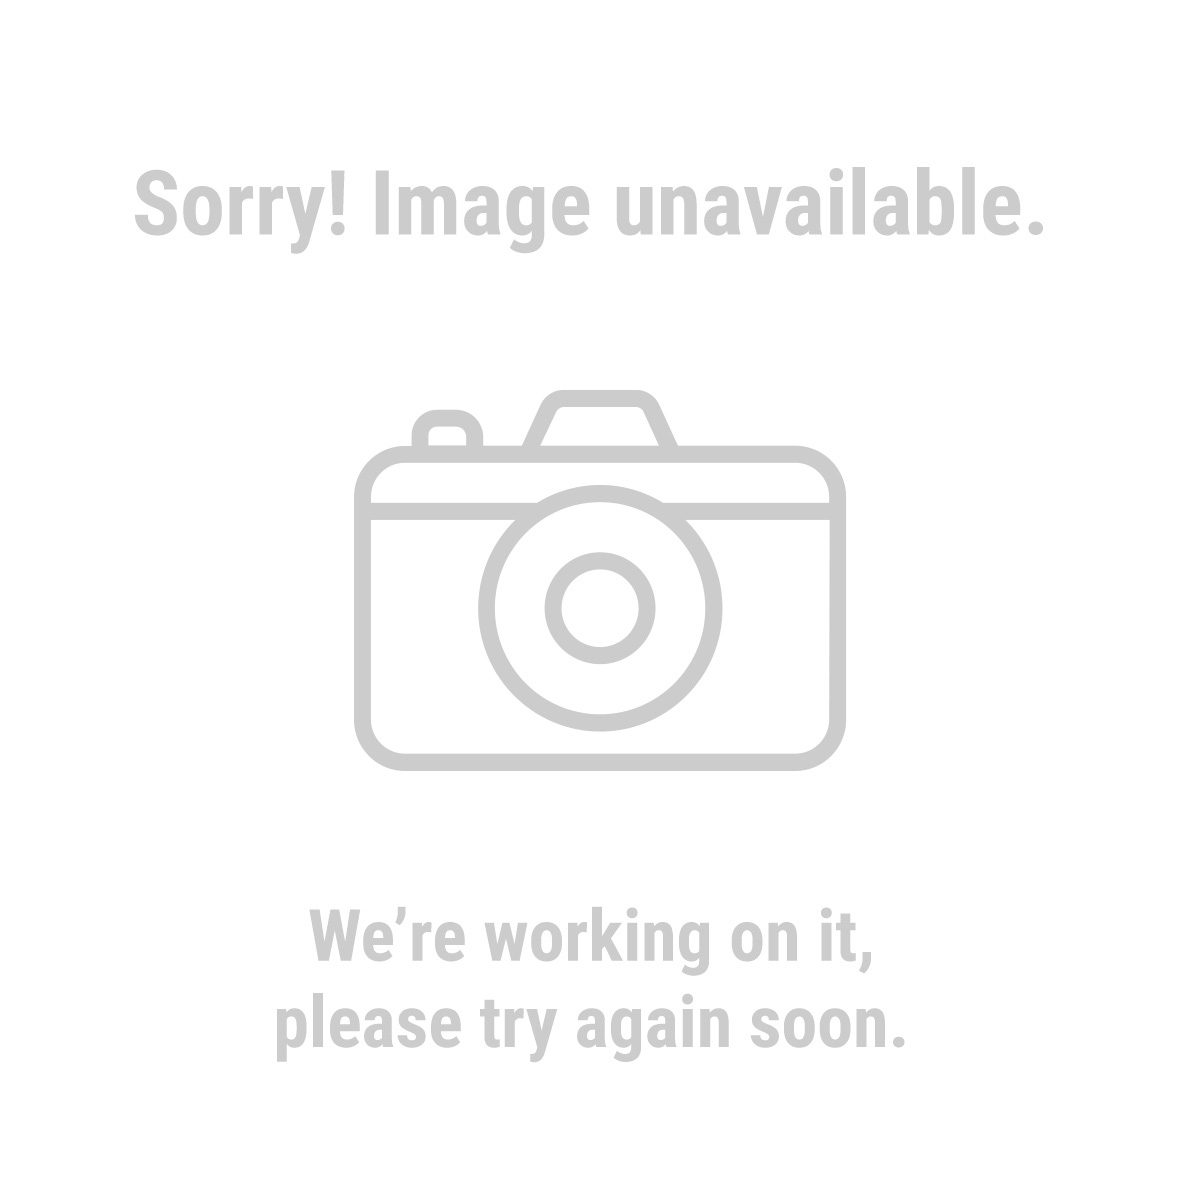 Pittsburgh 4885 12 Piece Industrial Punch and Chisel Set